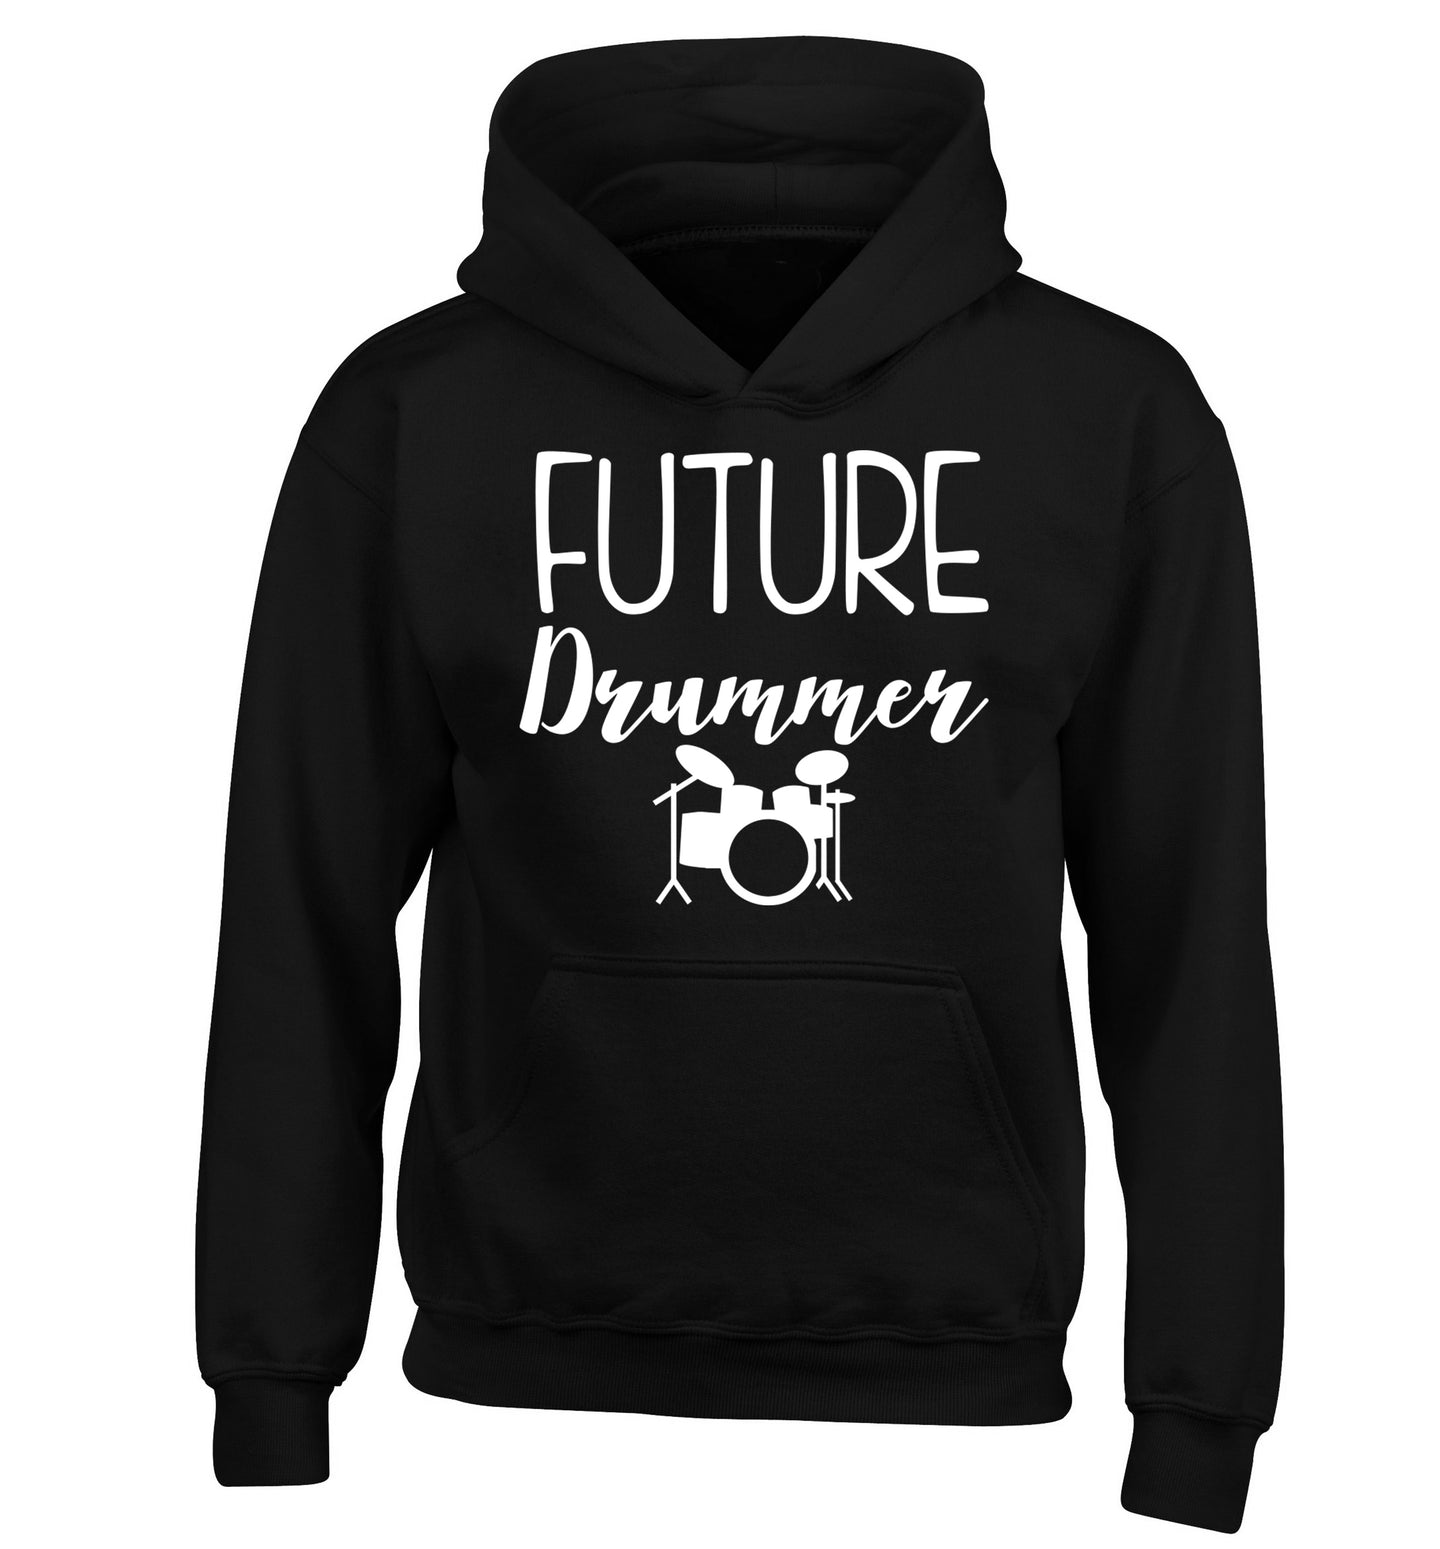 Future drummer children's black hoodie 12-14 Years